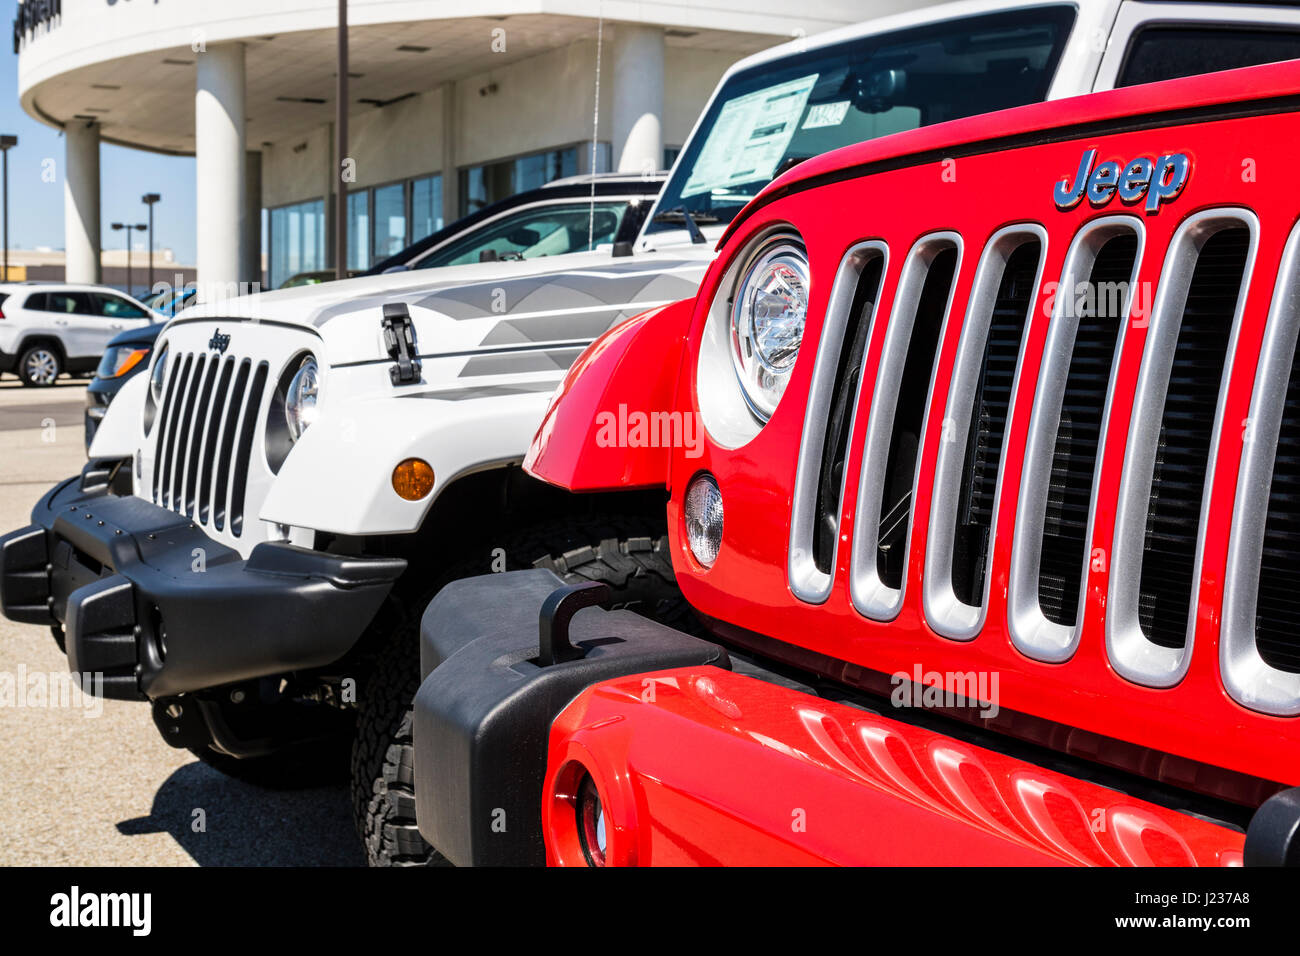 Jeep Dealership Indianapolis >> Indianapolis Circa April 2017 Jeep Automobile Dealership Jeep Is